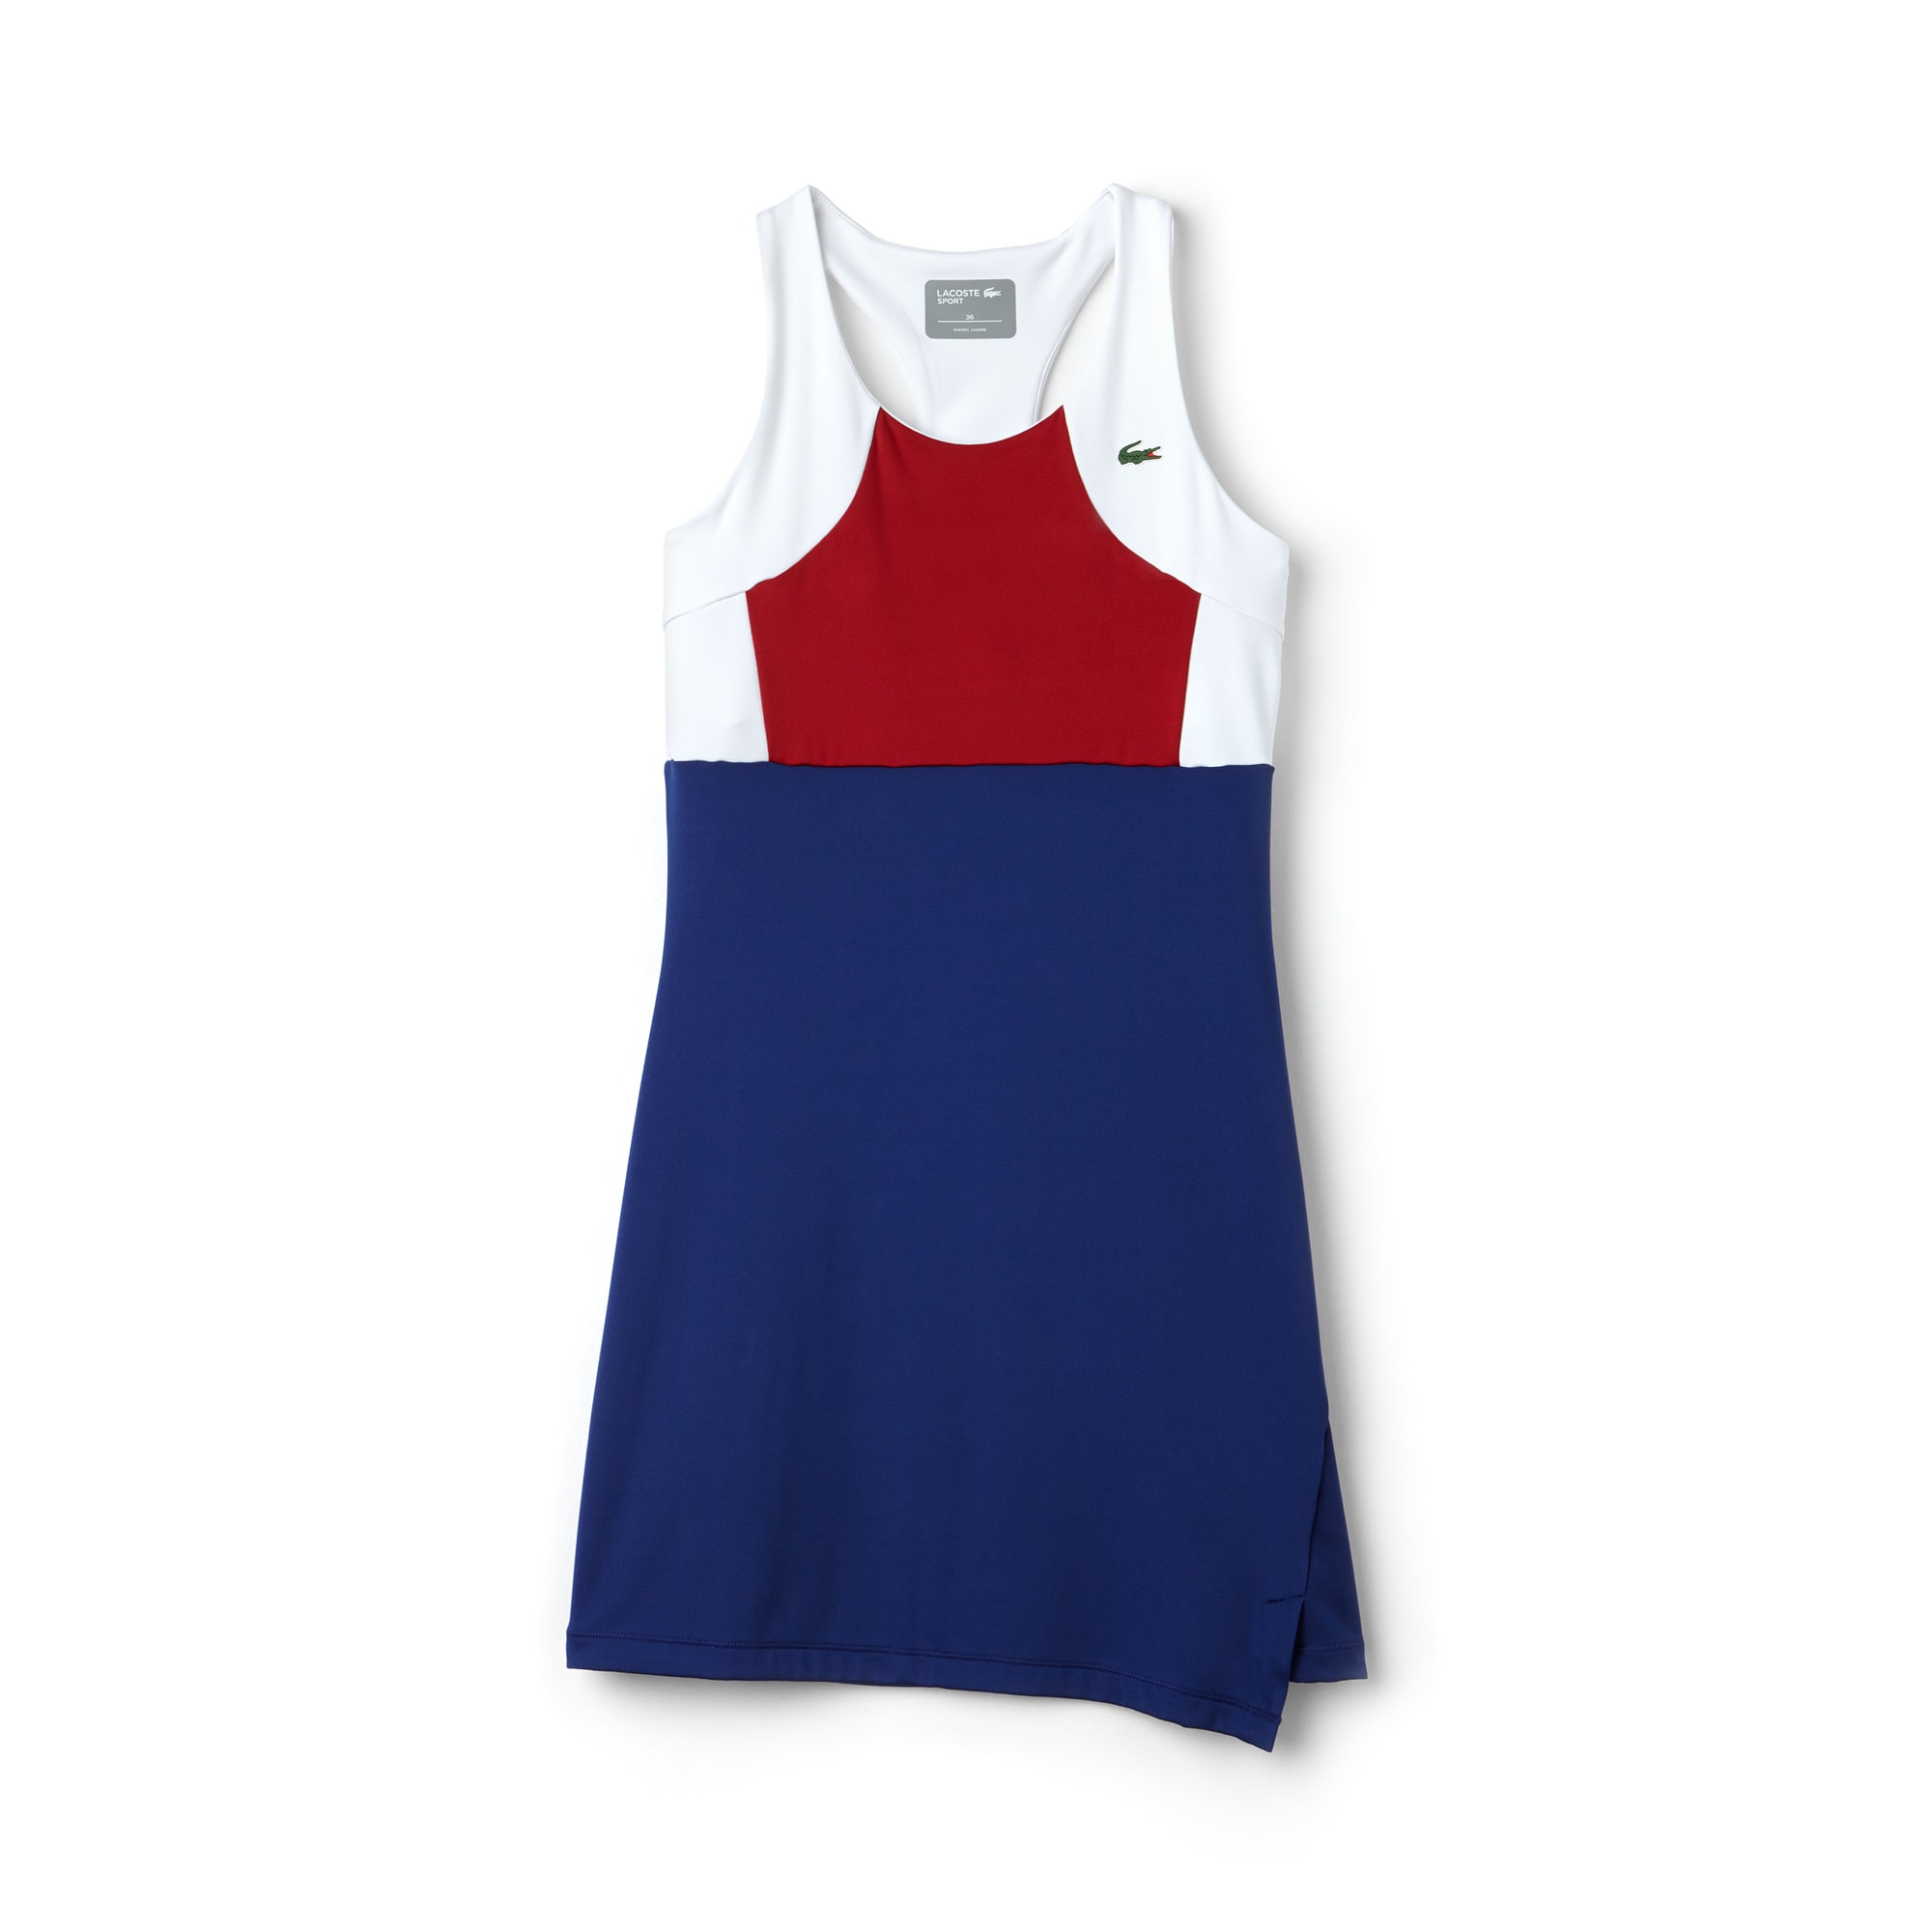 Women's Lacoste SPORT Tennis Colorblock Jersey Racerback Dress